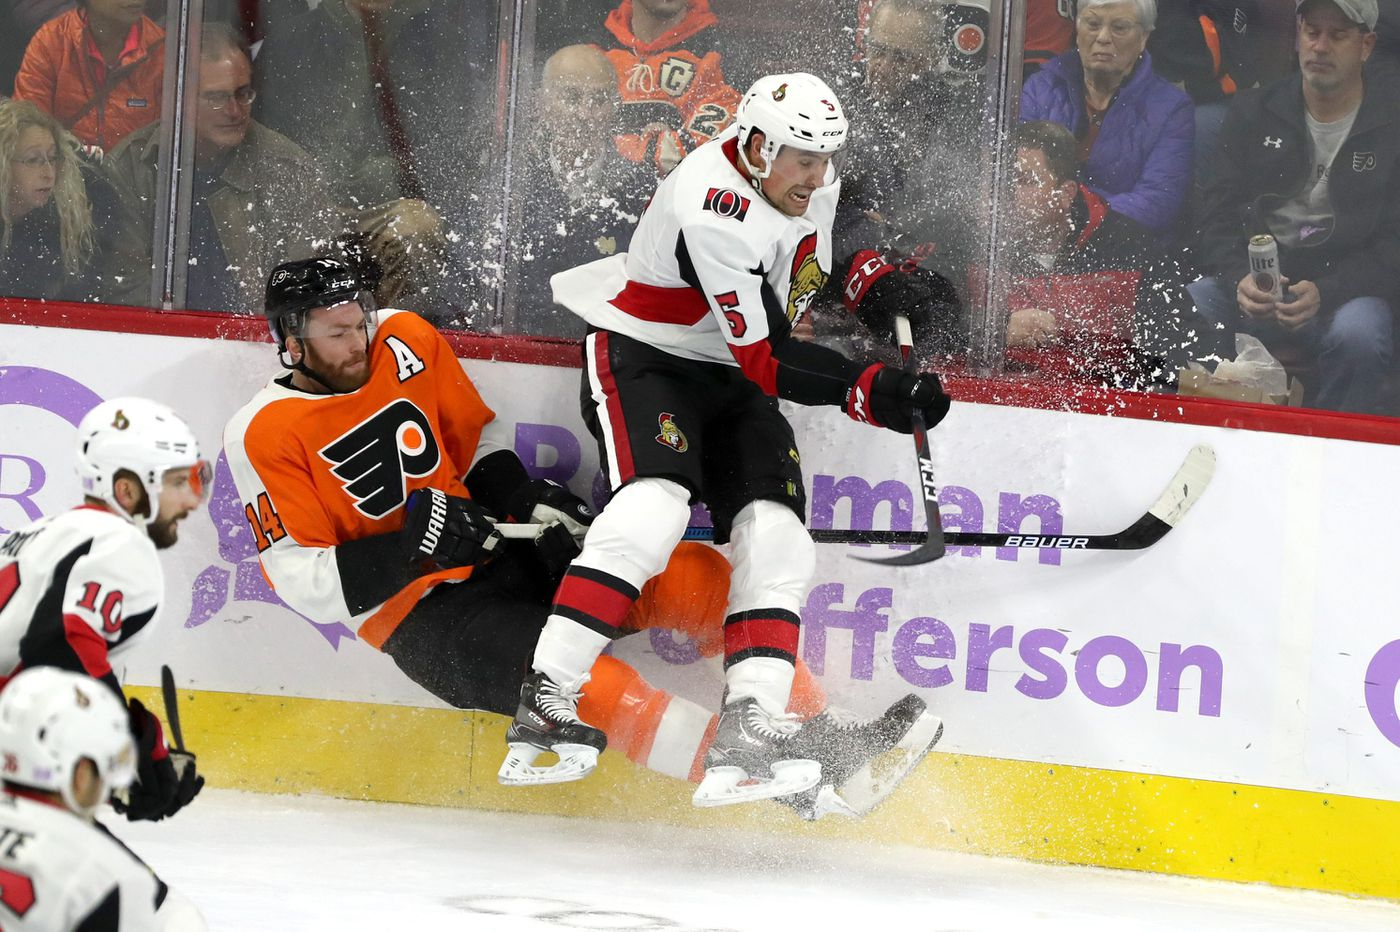 'Scared' Flyers collapse, lose to Senators in first game since Ron Hextall's firing